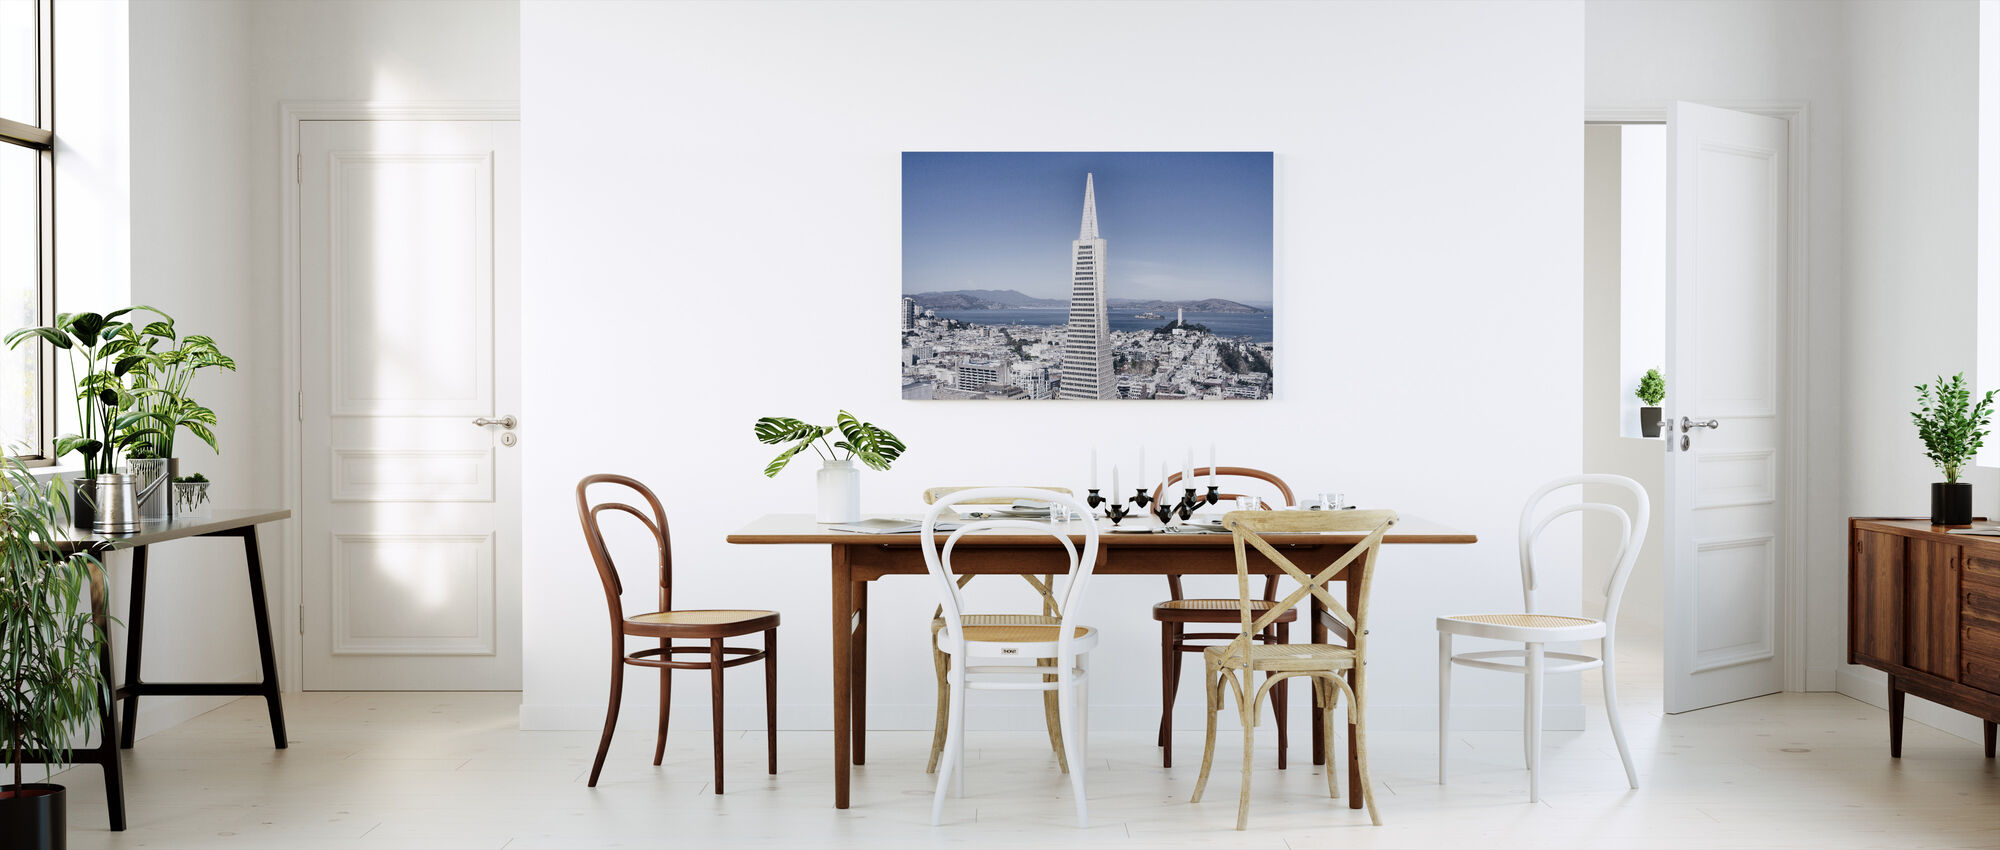 Business Buildings and Skyscrapper - Canvas print - Kitchen